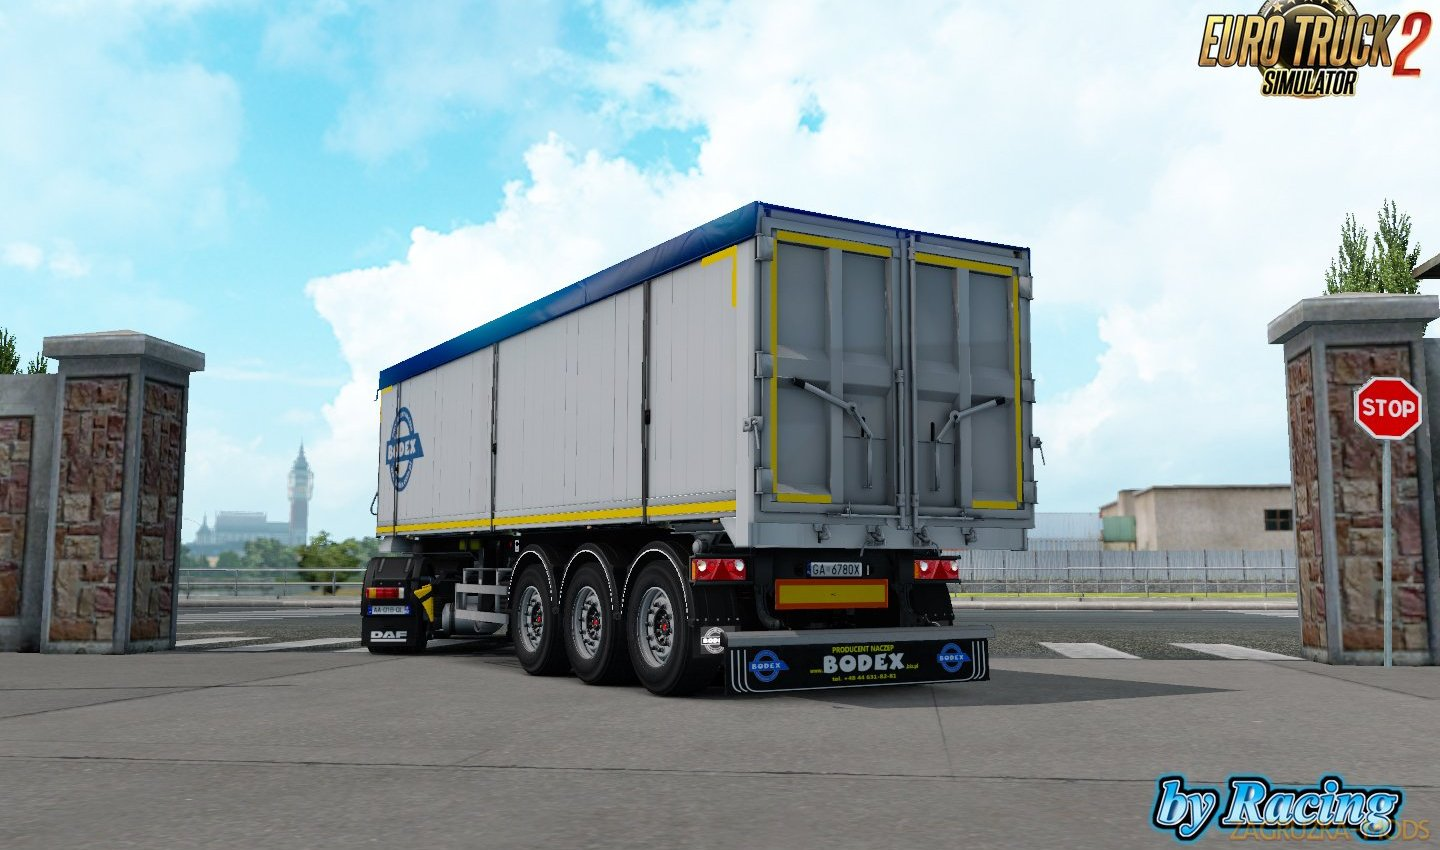 Trailer Bodex KIS 3 v1.2.1 by Racing (1.35.x) for ETS2